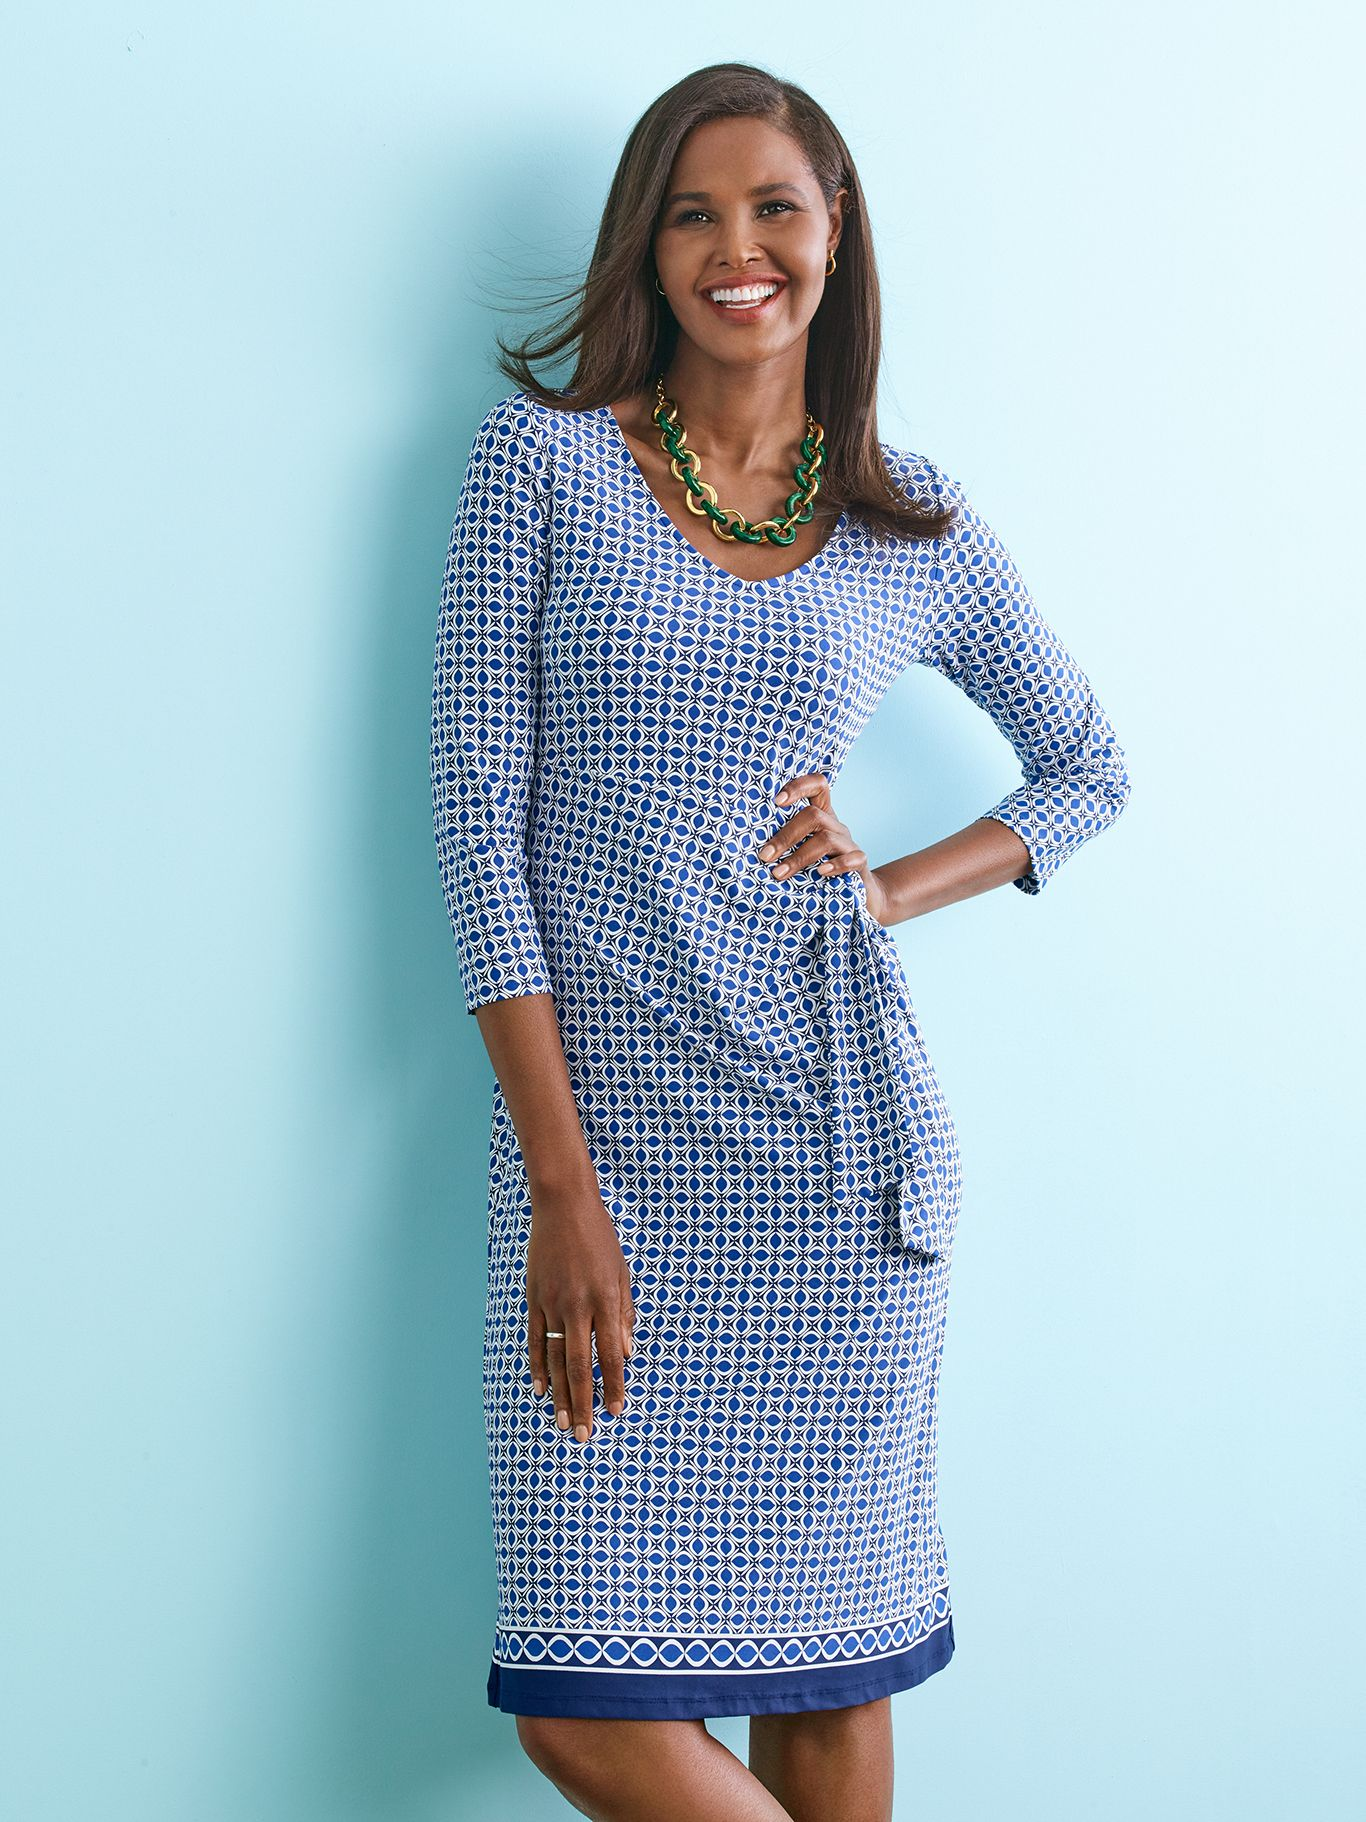 Uncomplicated Pullover Dress Simply Made Just For You Talbots Wear To Work Casual Work Dresses Shift Dress Talbots Fashion [ 1822 x 1366 Pixel ]